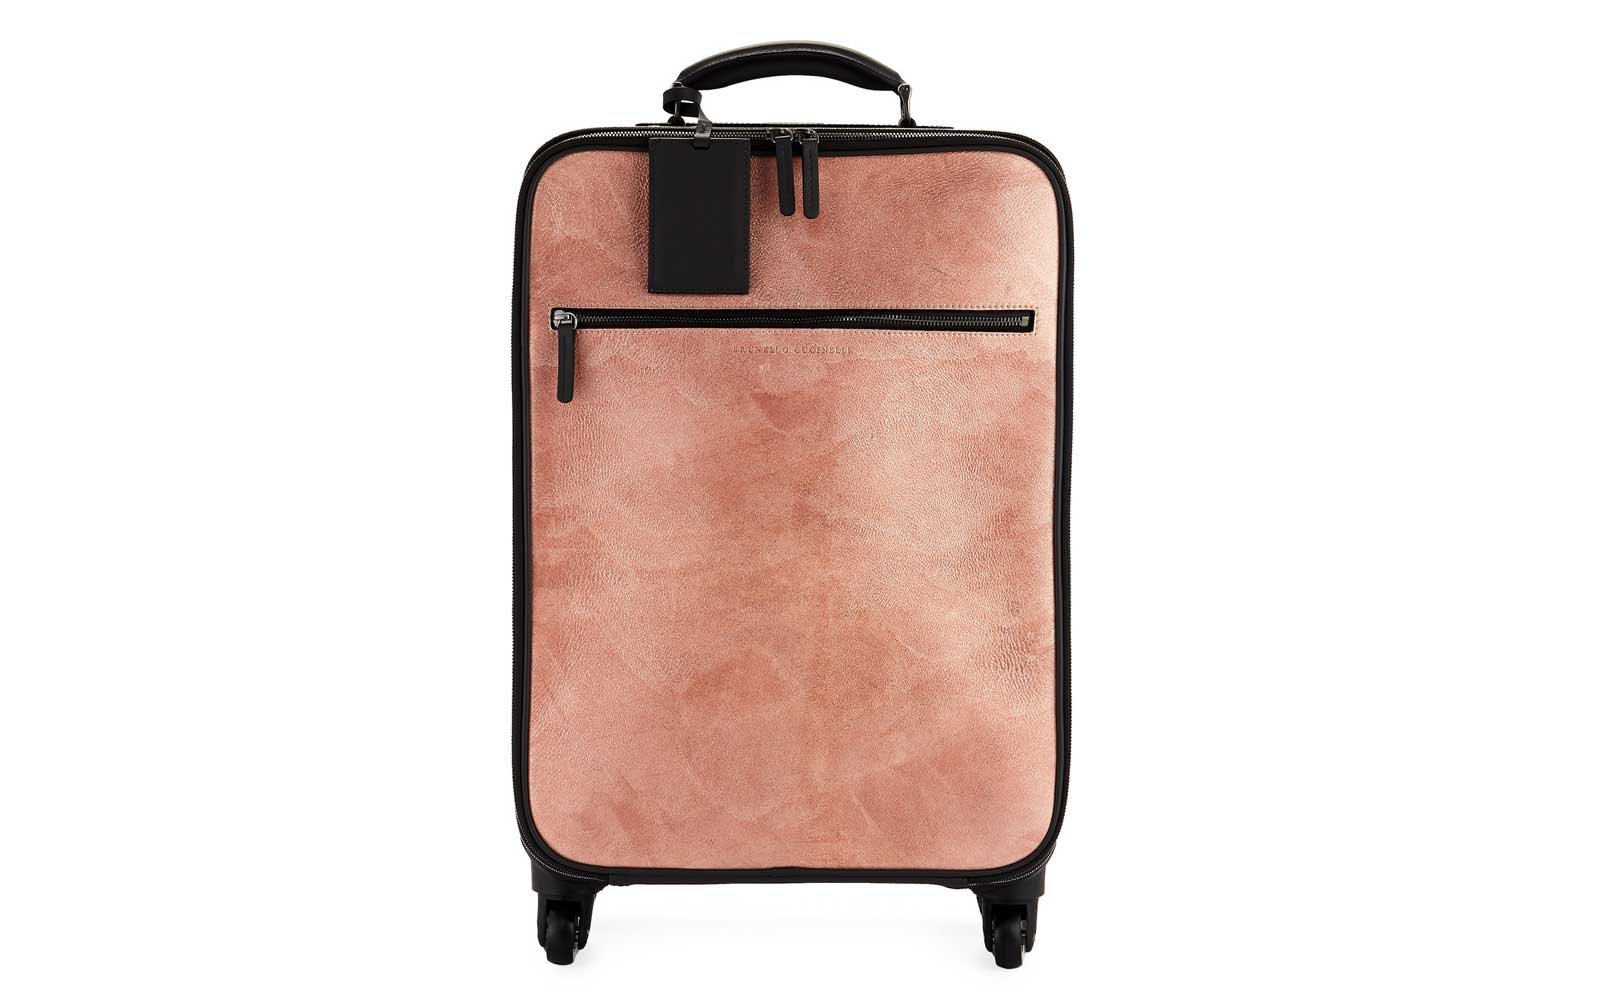 Brunello Cucinelli Glitter Leather and Monili Trolley Bag in gray/pink